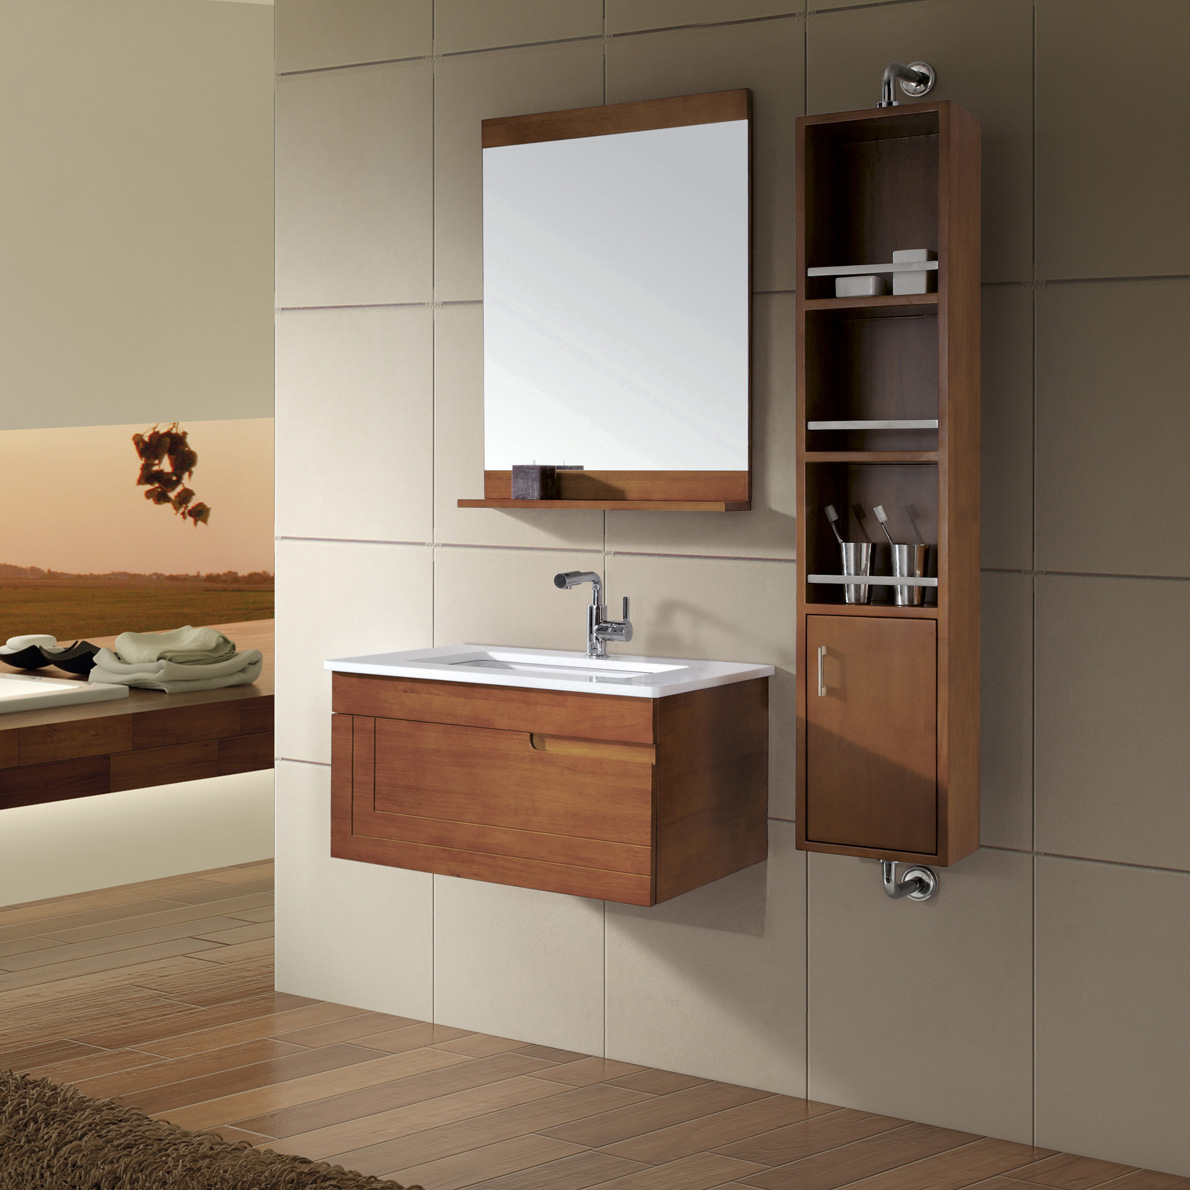 China bathroom cabinet vanity kl269 china bathroom for Best bathroom storage